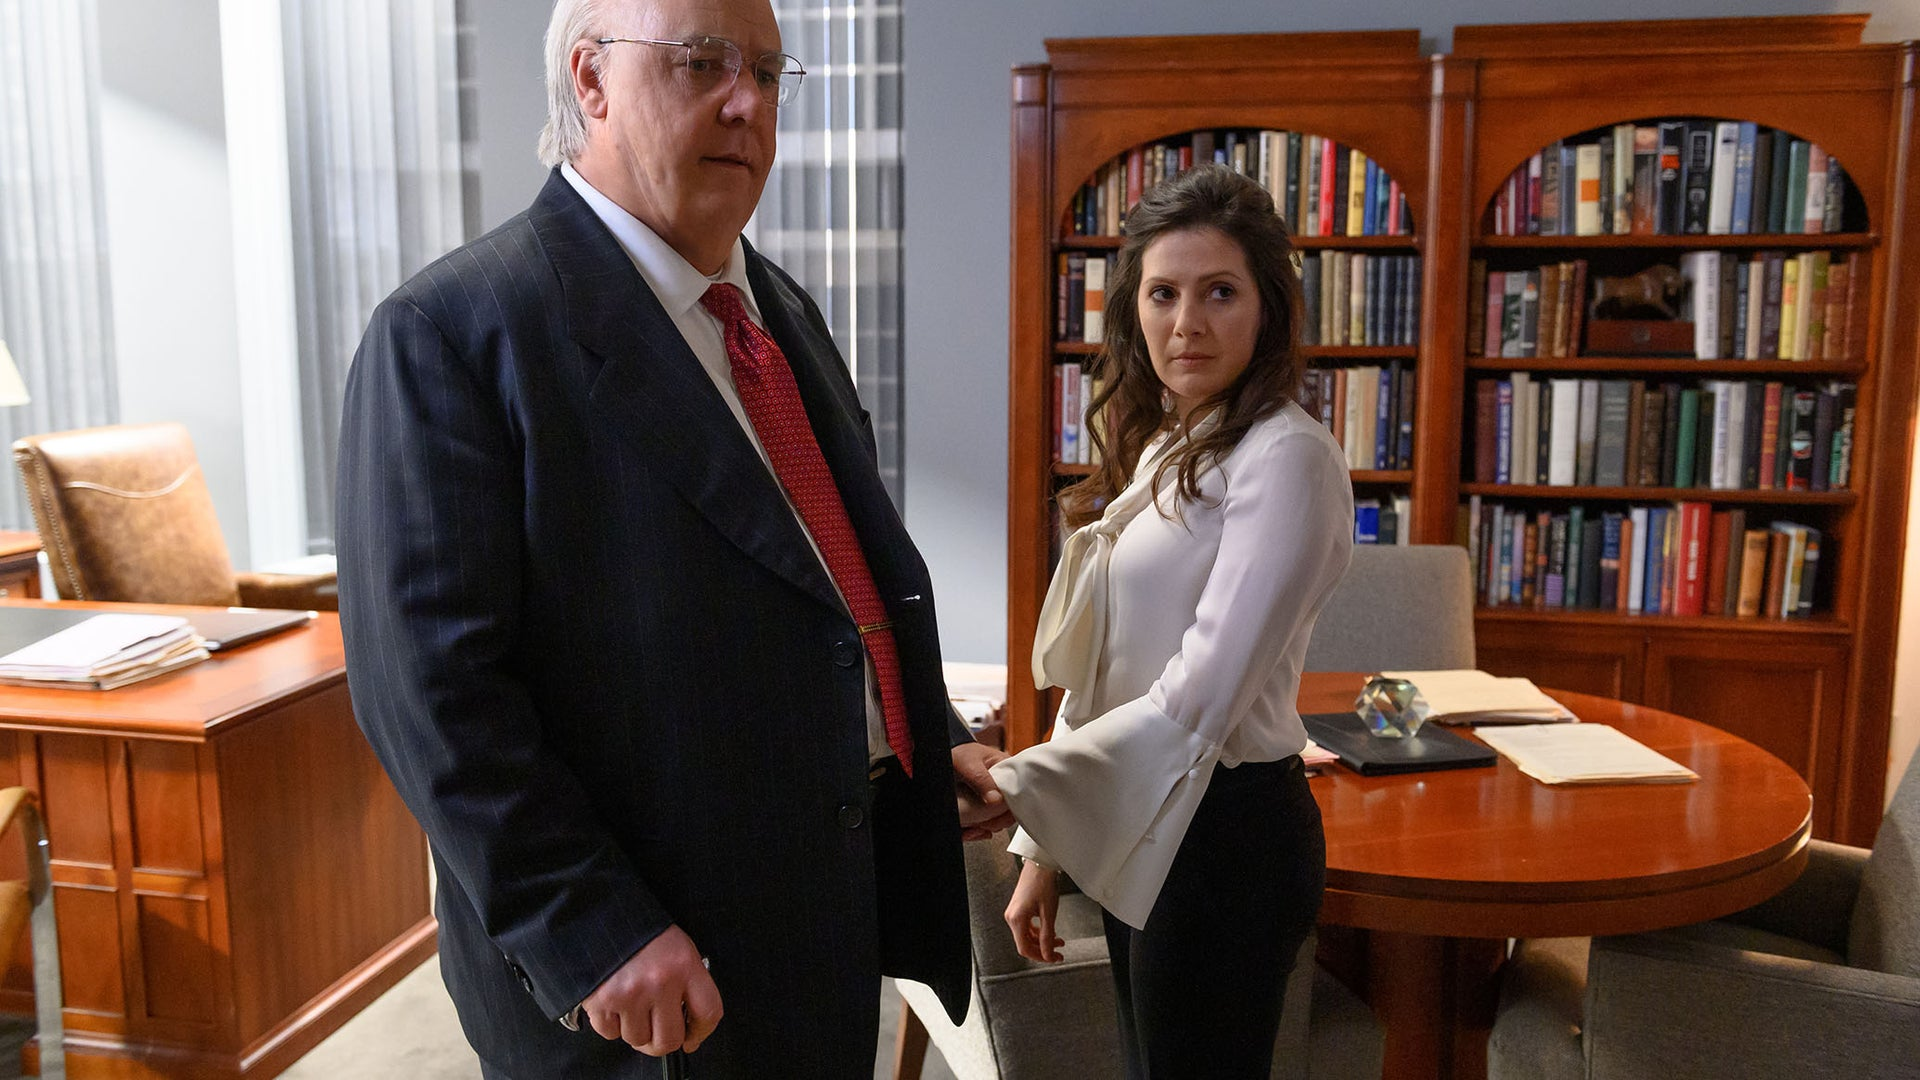 Russell Crowe as Roger Ailes and Aleksa Palladino as Judy Laterza in The Loudest Voice